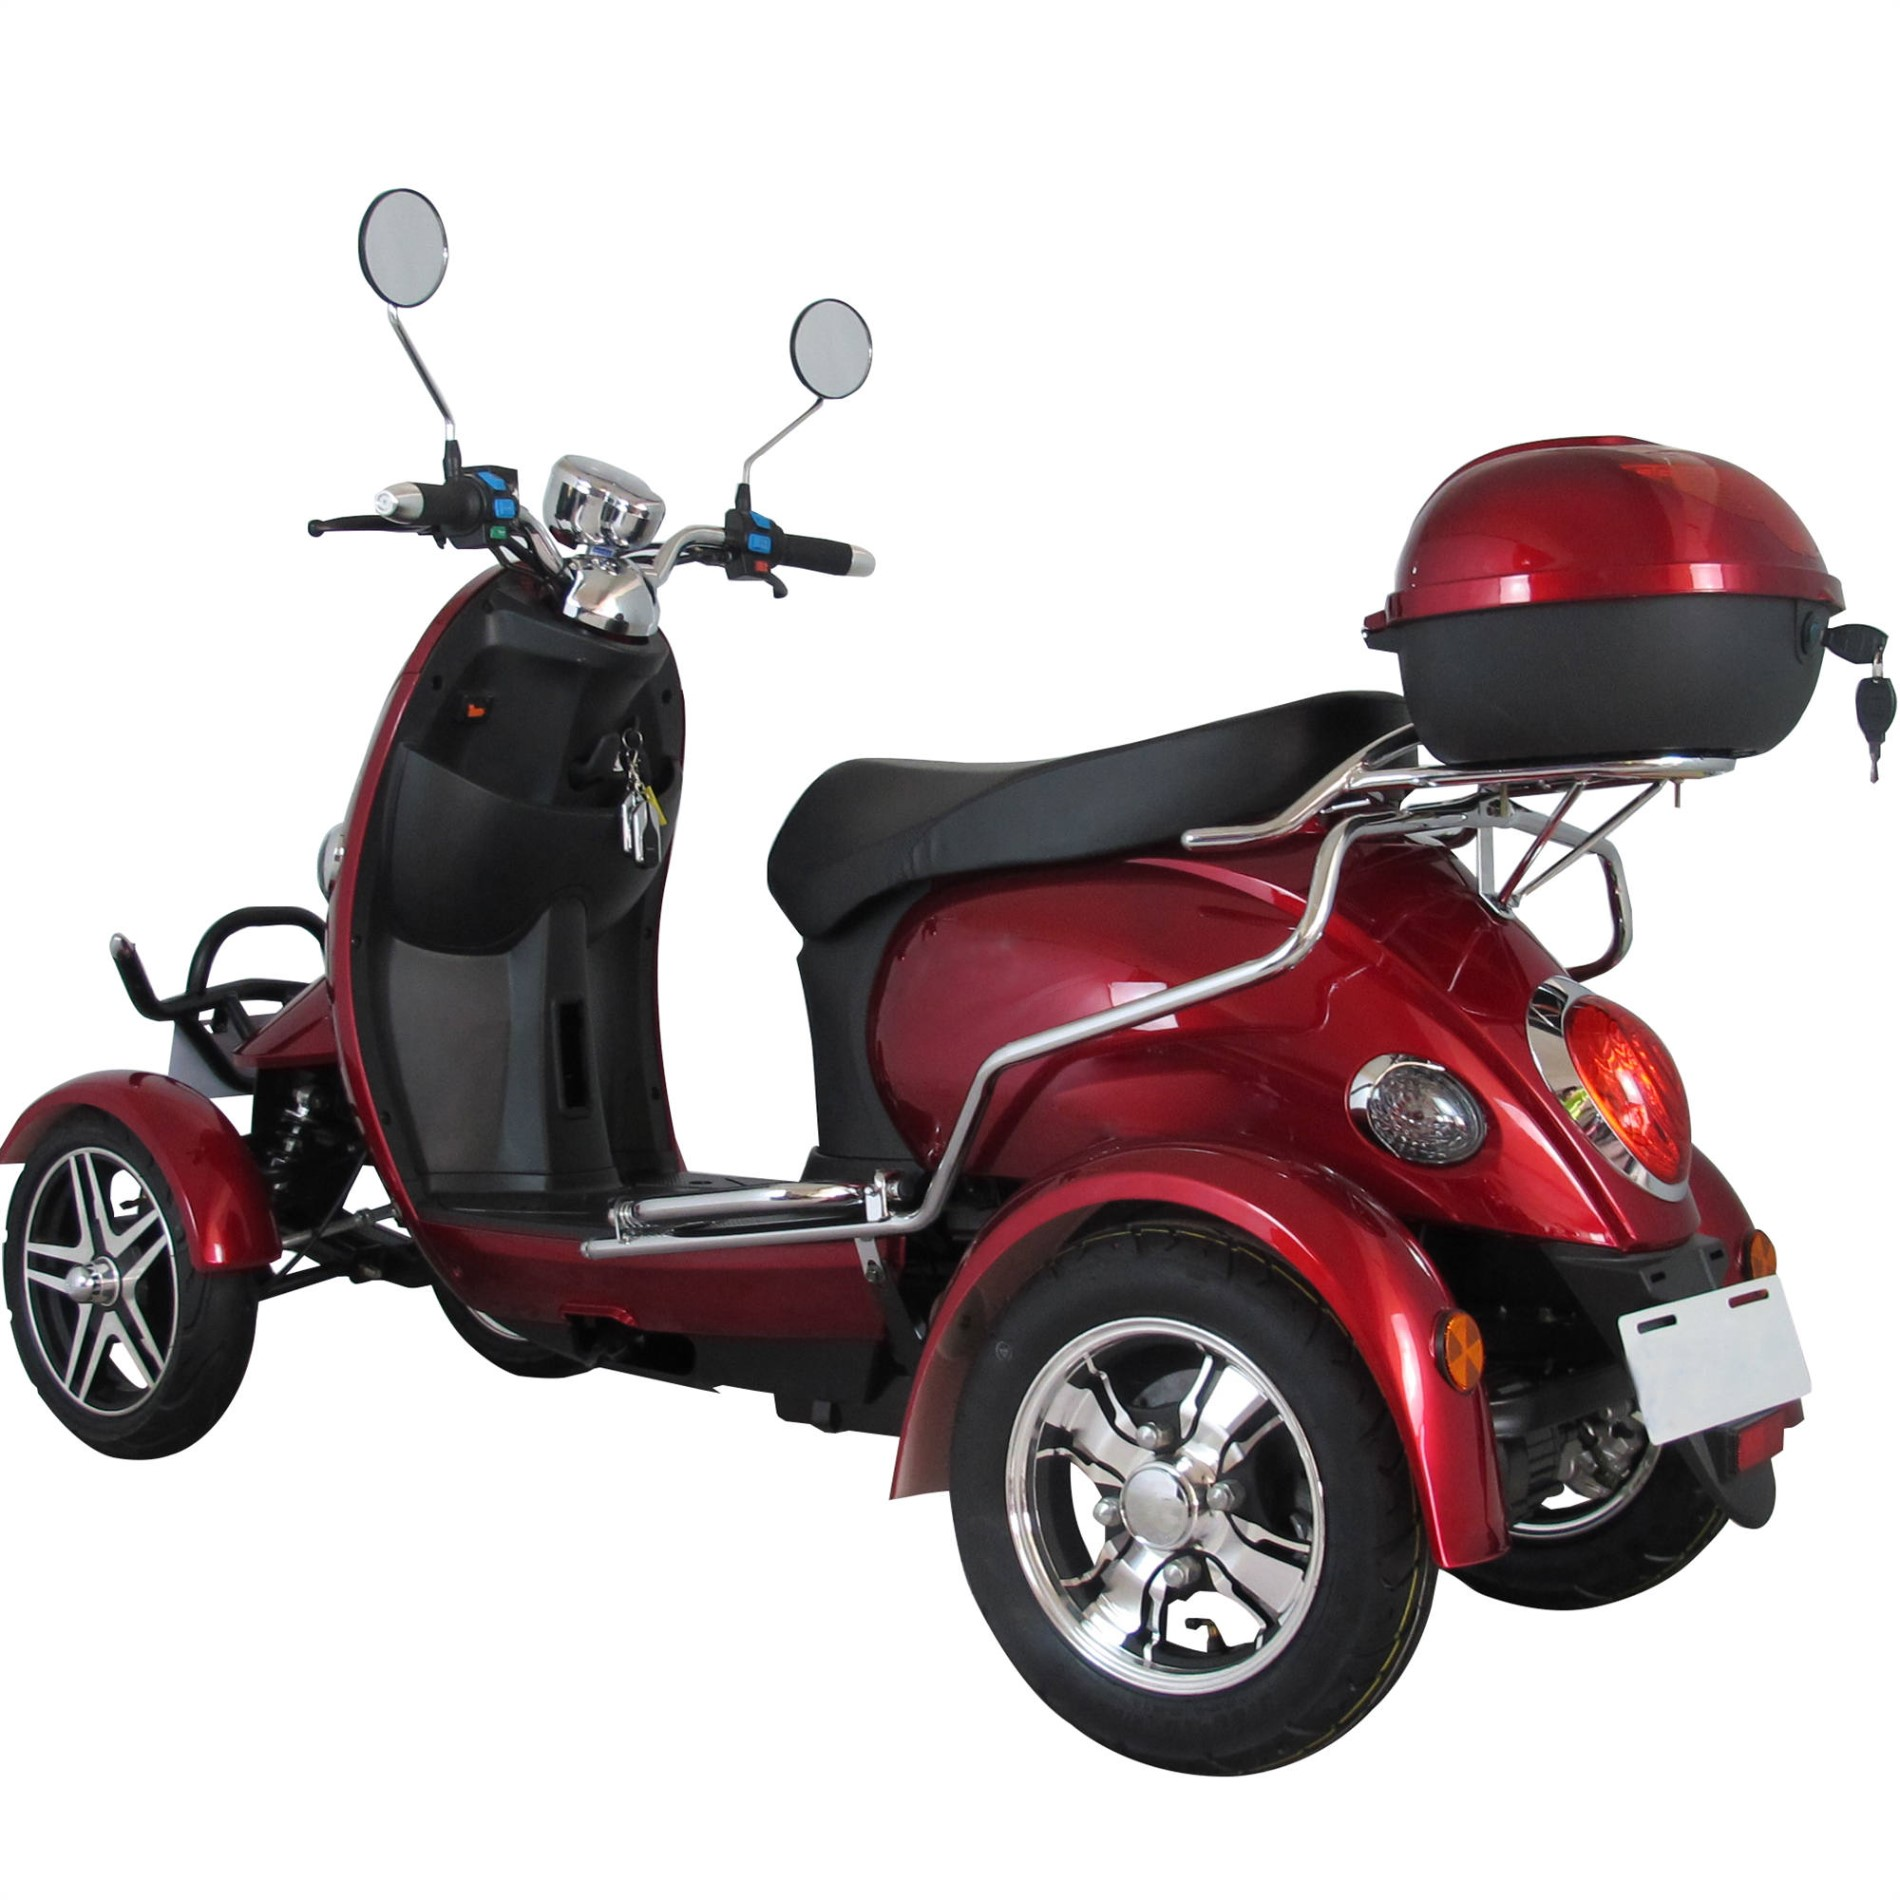 High quality 4 Wheel Scooter Quotes,China 4 Wheel Scooter Factory,4 Wheel Scooter Purchasing